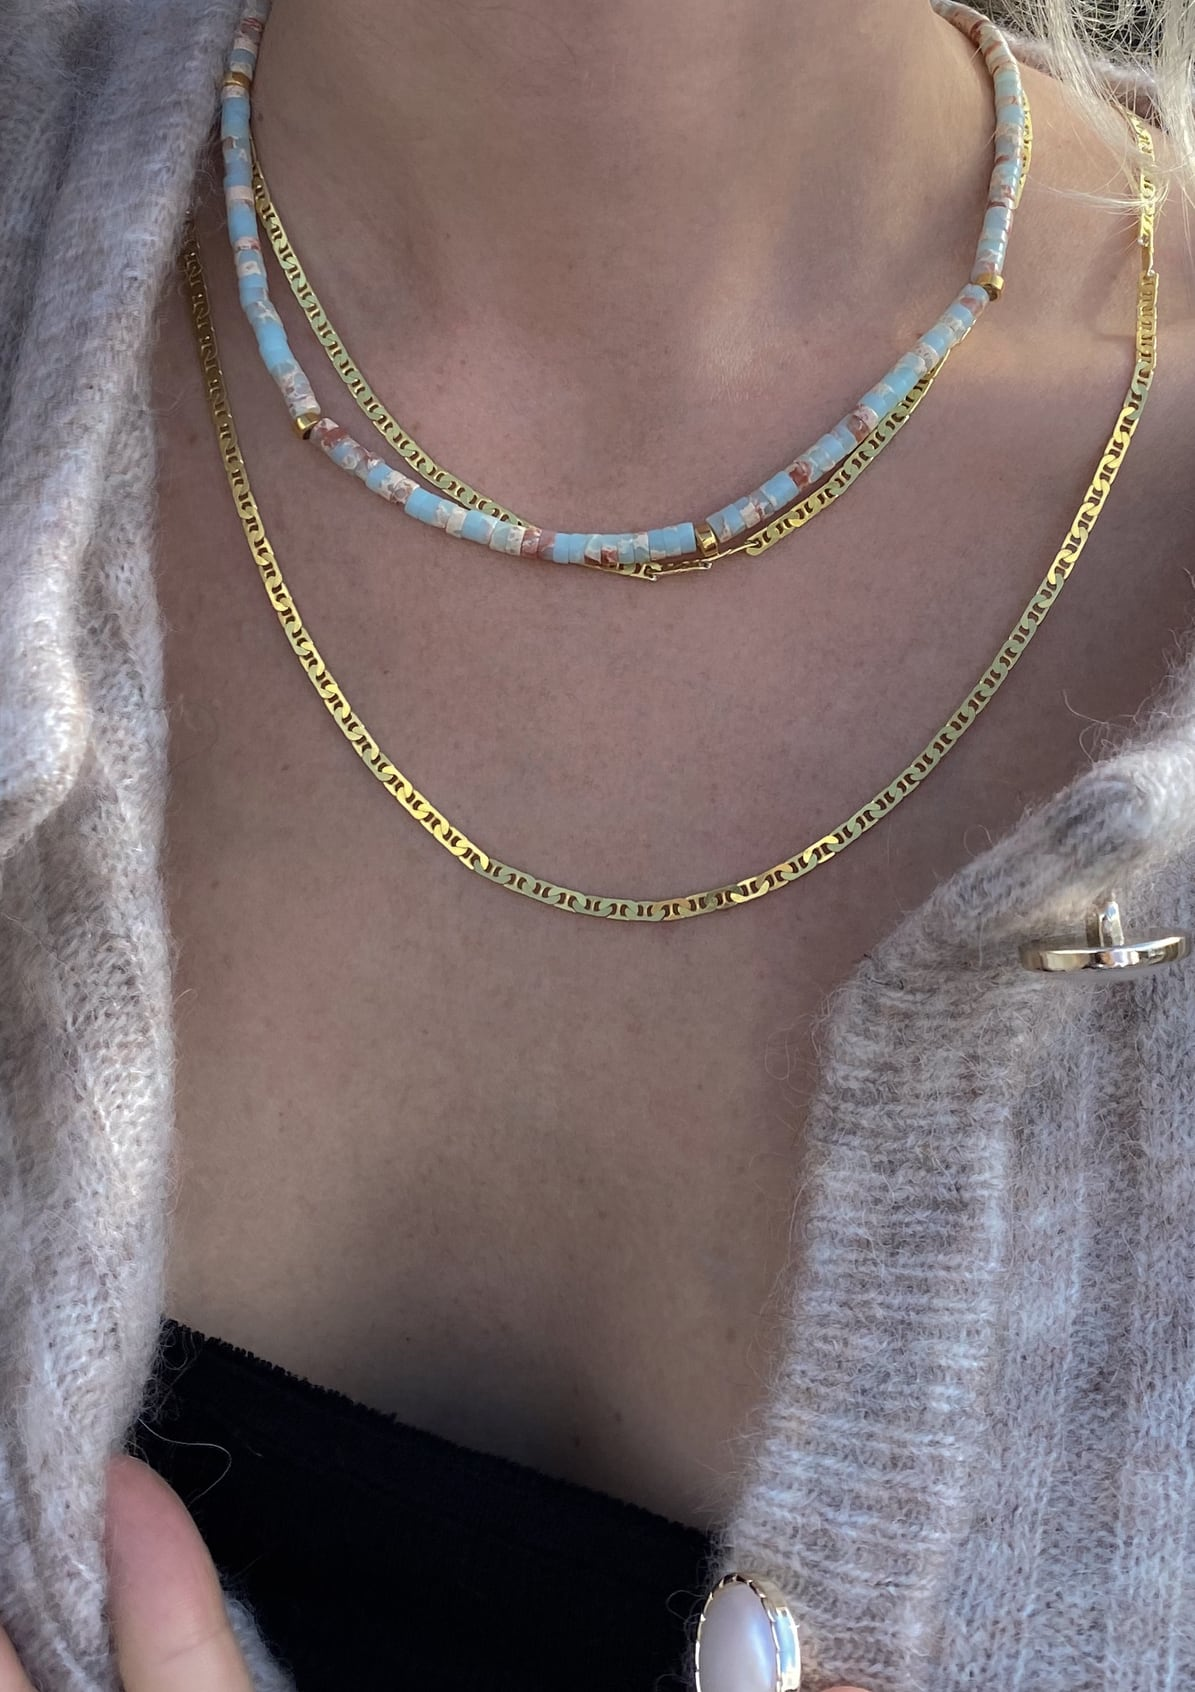 THERE'S SOMETHING ABOUT MARY NECKLACE - HERMINA ATHENS X STYLELOVE COLLECTION